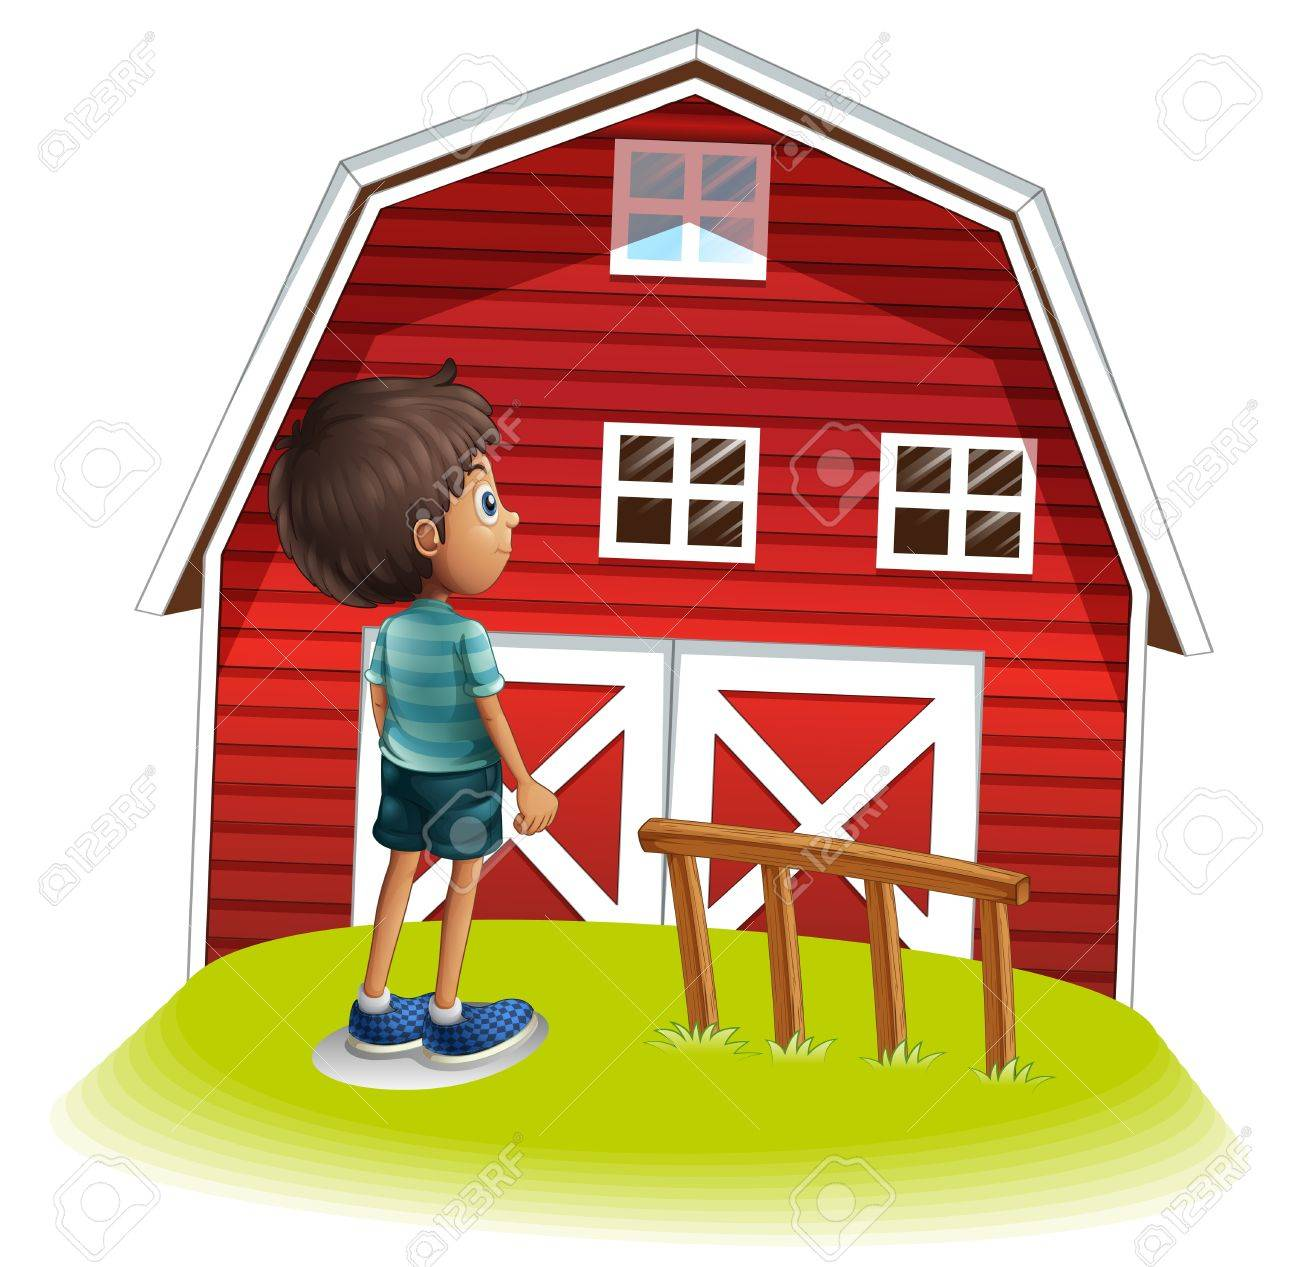 Illustration Of A Boy Standing In Front The Red Farmhouse On White Background Stock